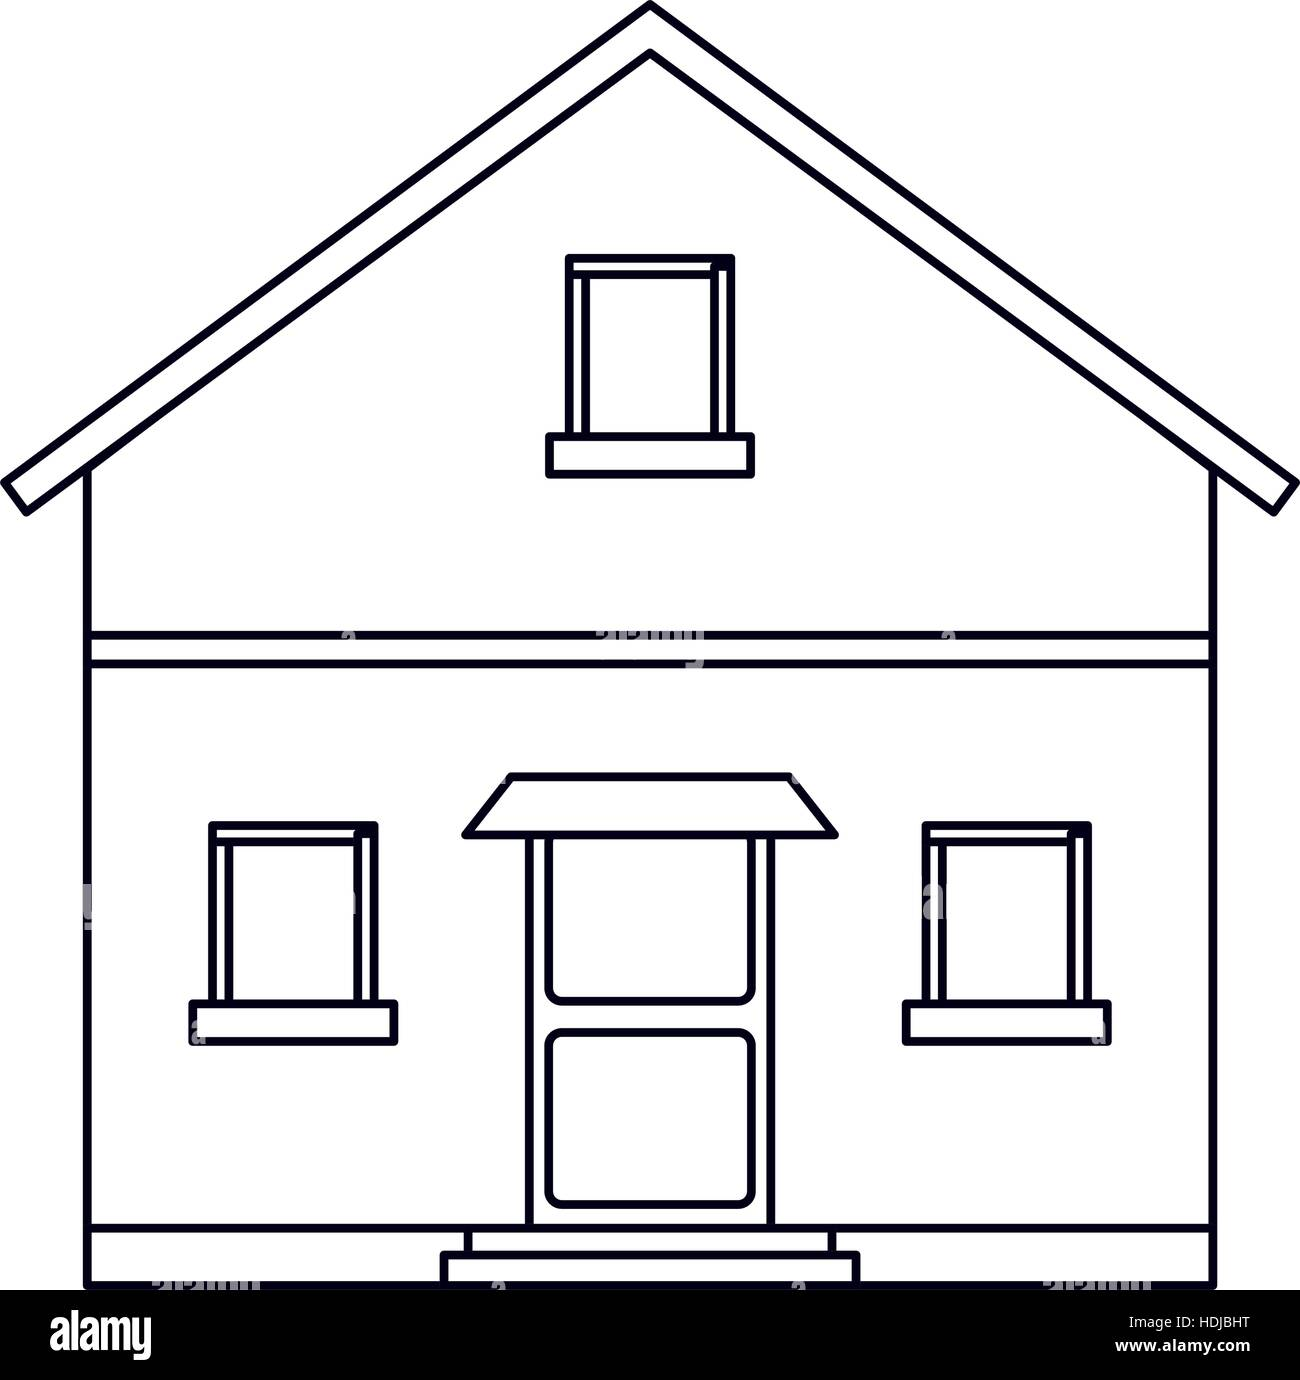 Outline Front View House Home